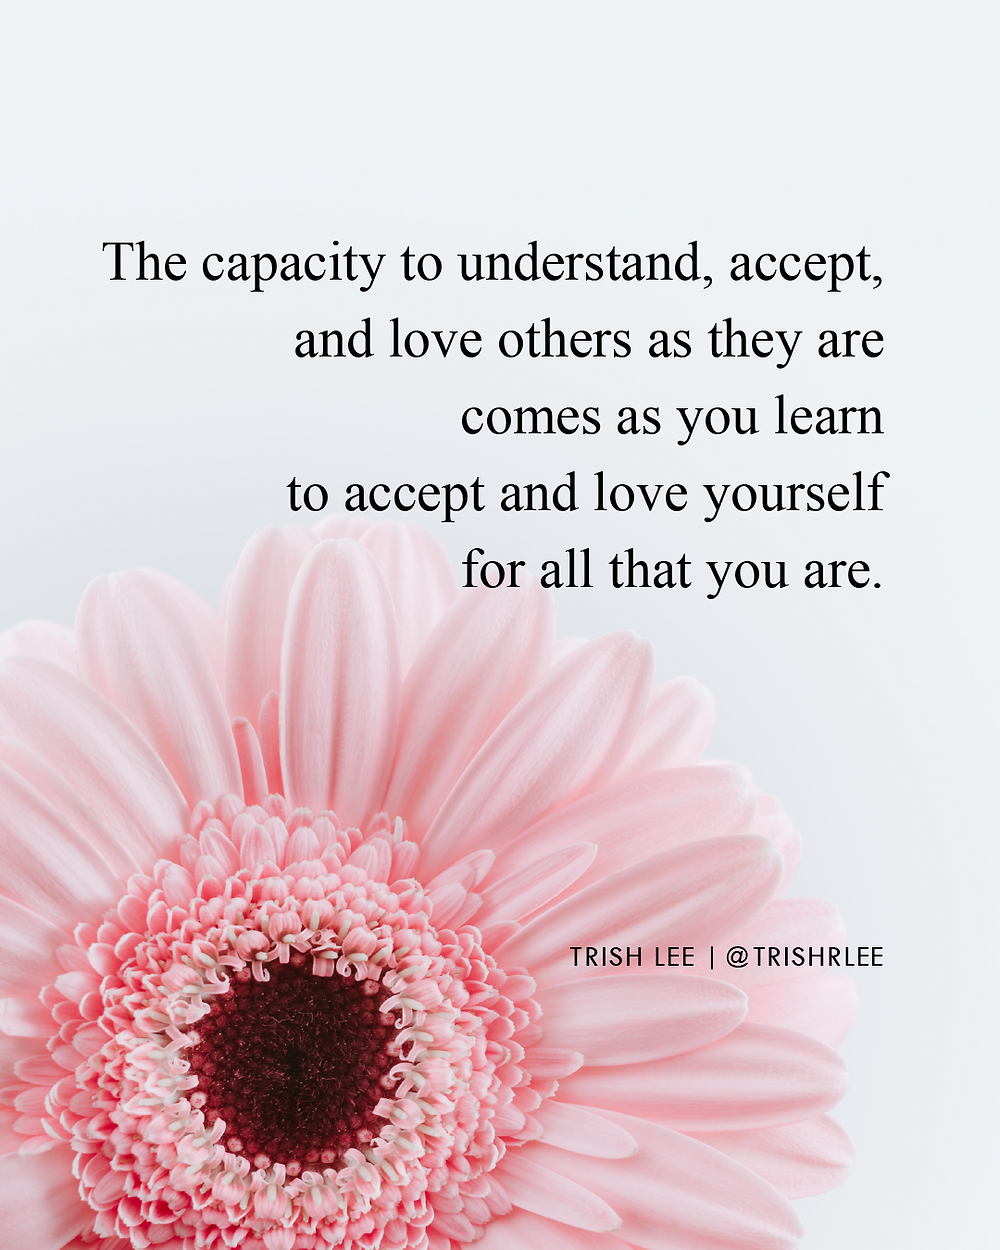 the capacity to understand accept and love others as they are comes as you learn to accept and love yourself for all that you are